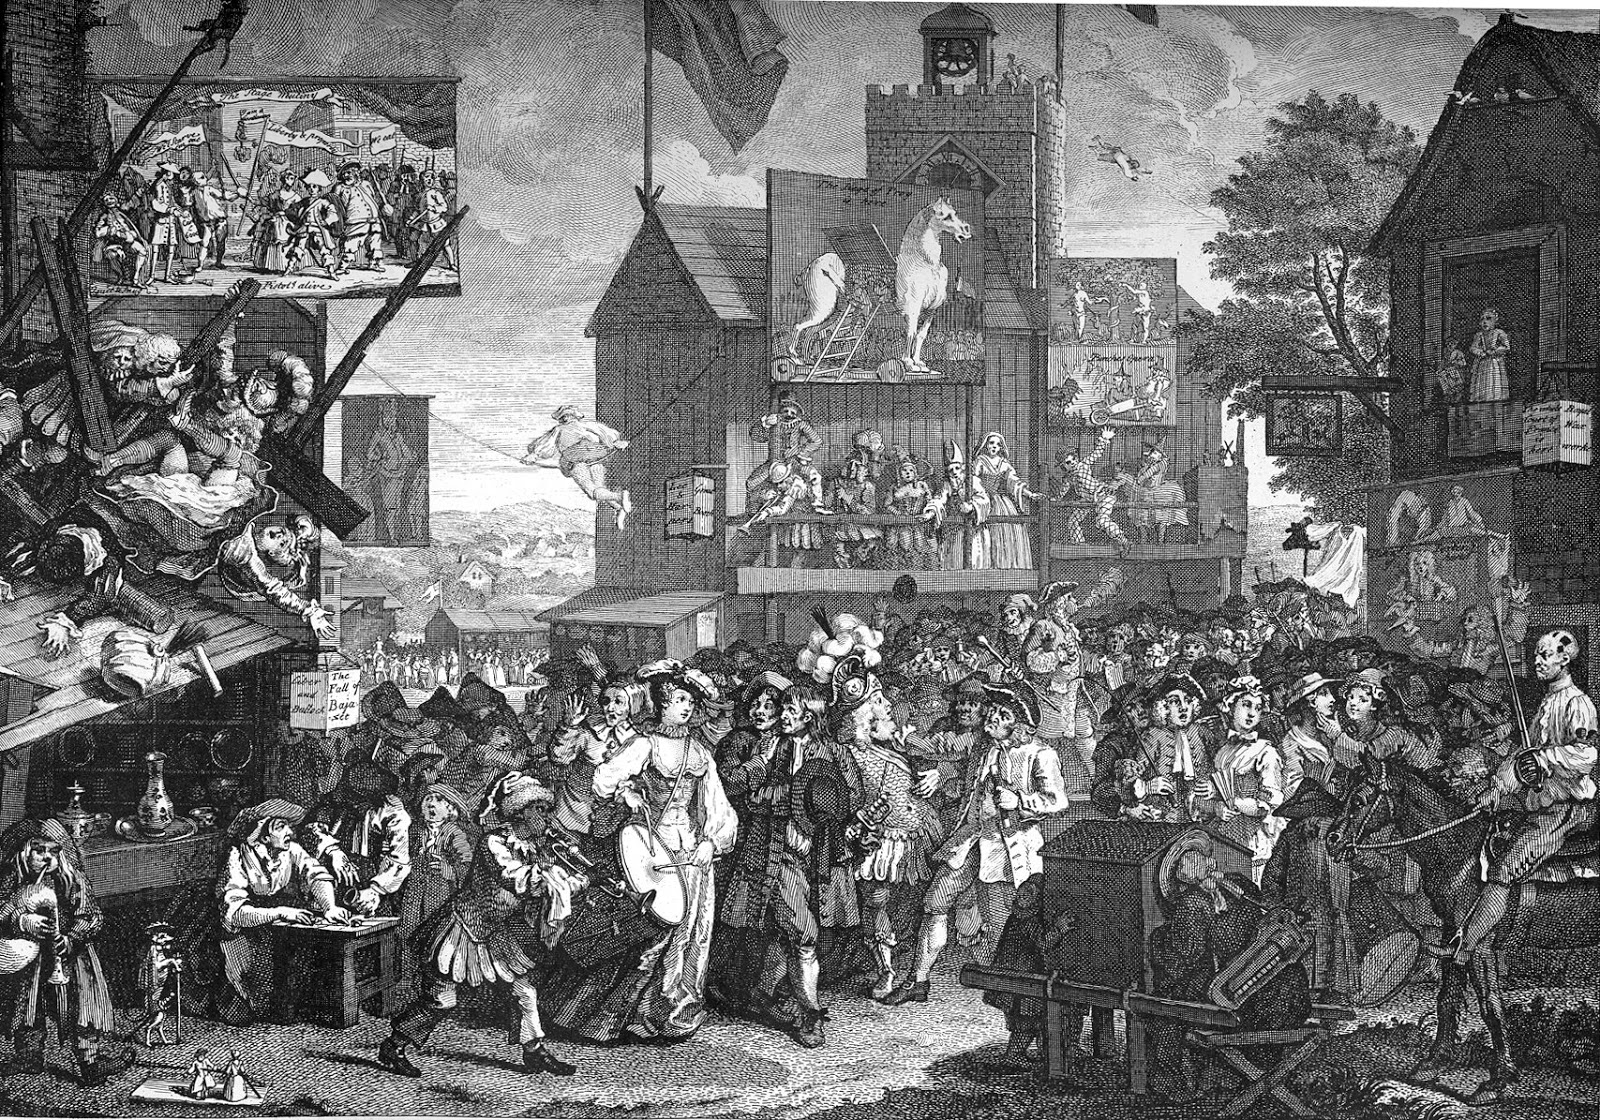 a description of the globe theatre a seventeenth century english theatre in southwark london Description of the original globe (1599) the original globe theatre opened in the fall of 1599 on the south bank of the thames river, across from central london.